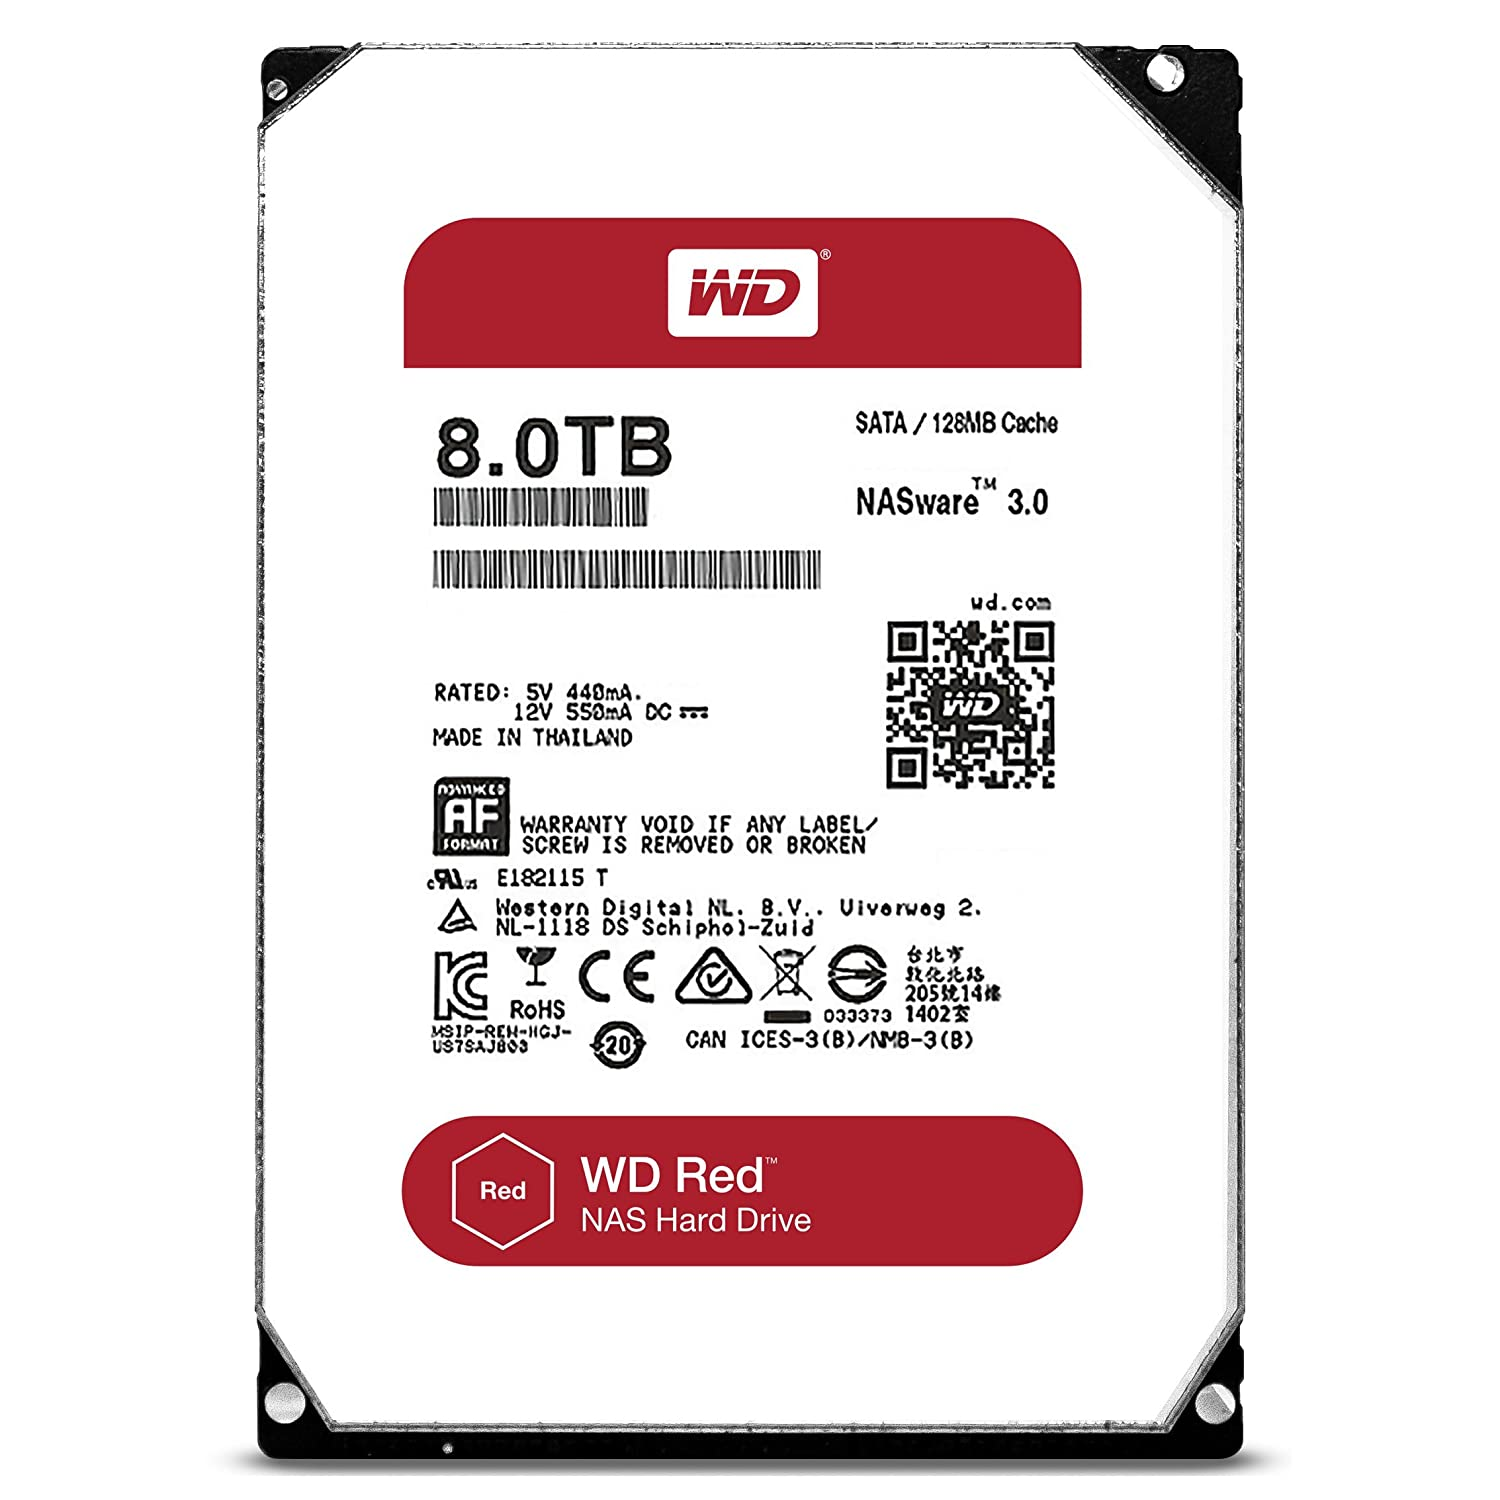 Amazon com: WD Red 8TB NAS Hard Disk Drive - 5400 RPM Class